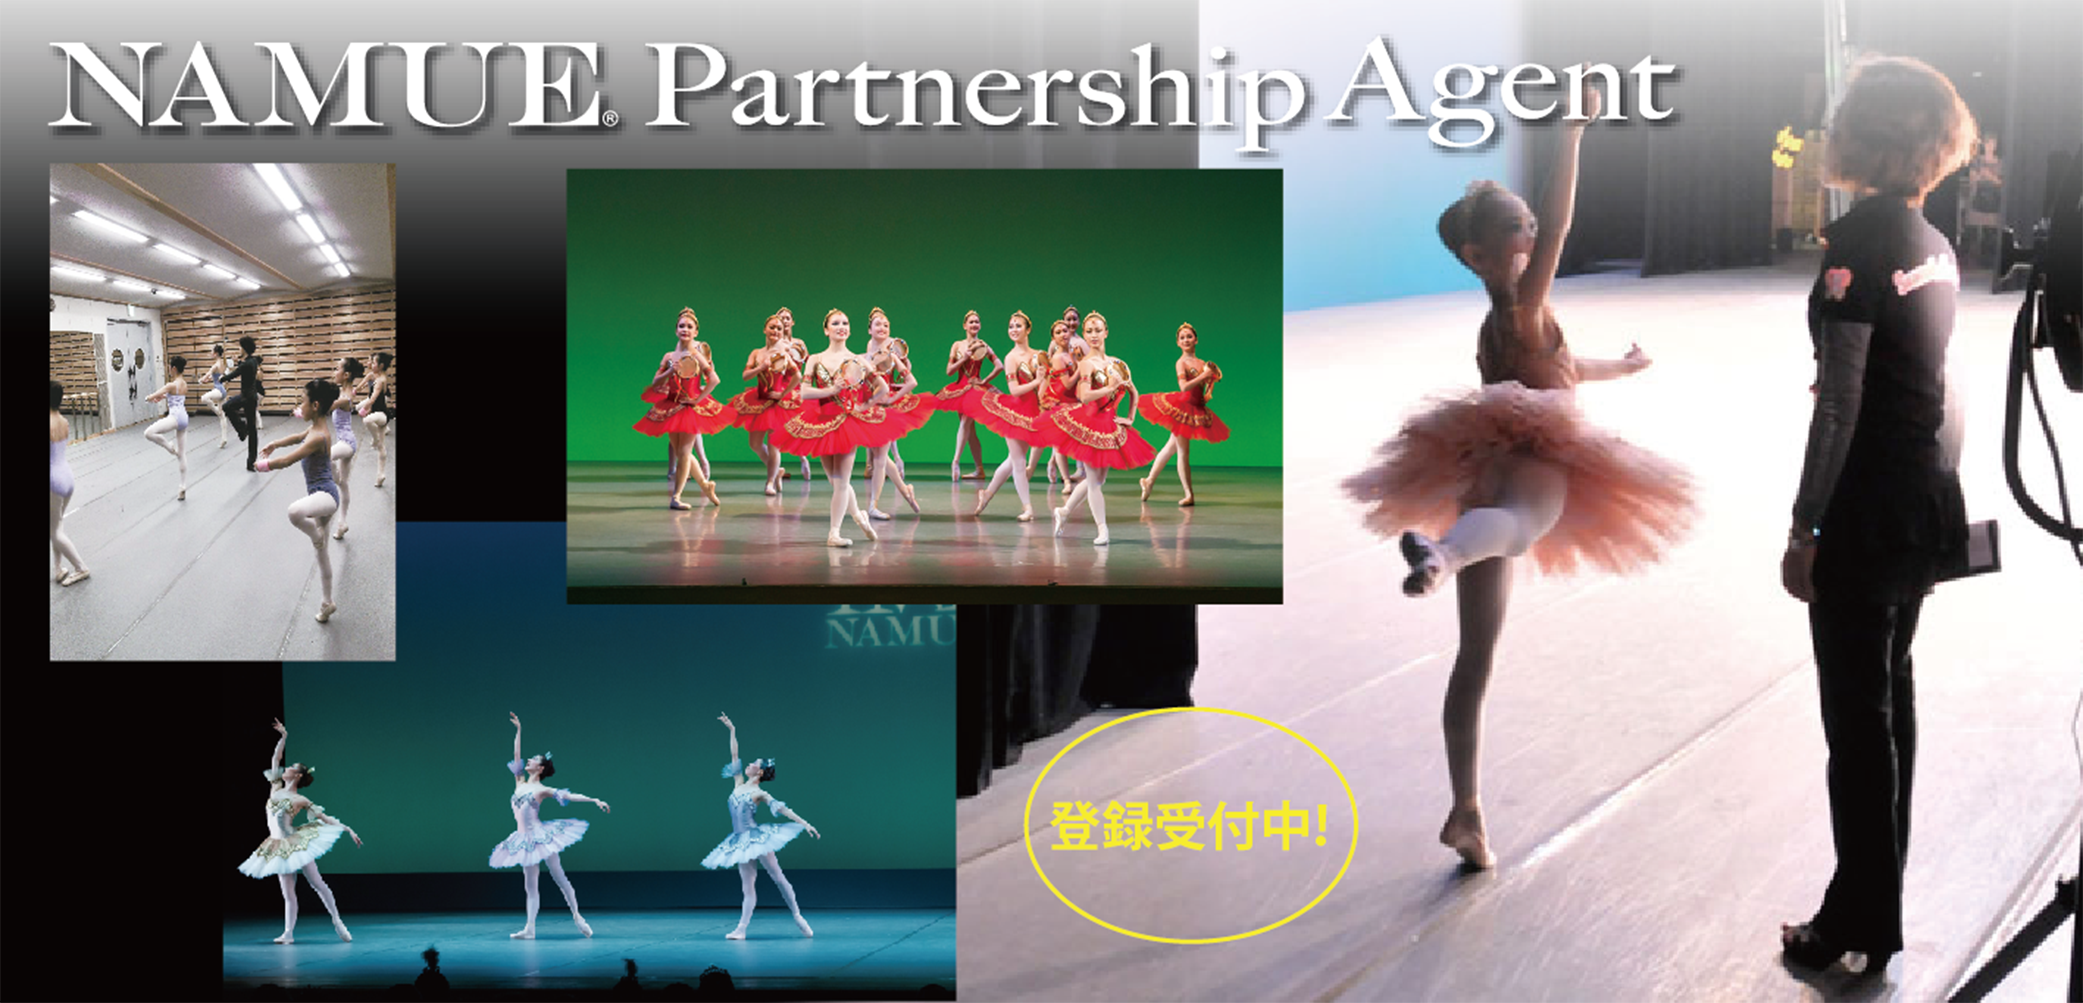 PartnerShipAgent